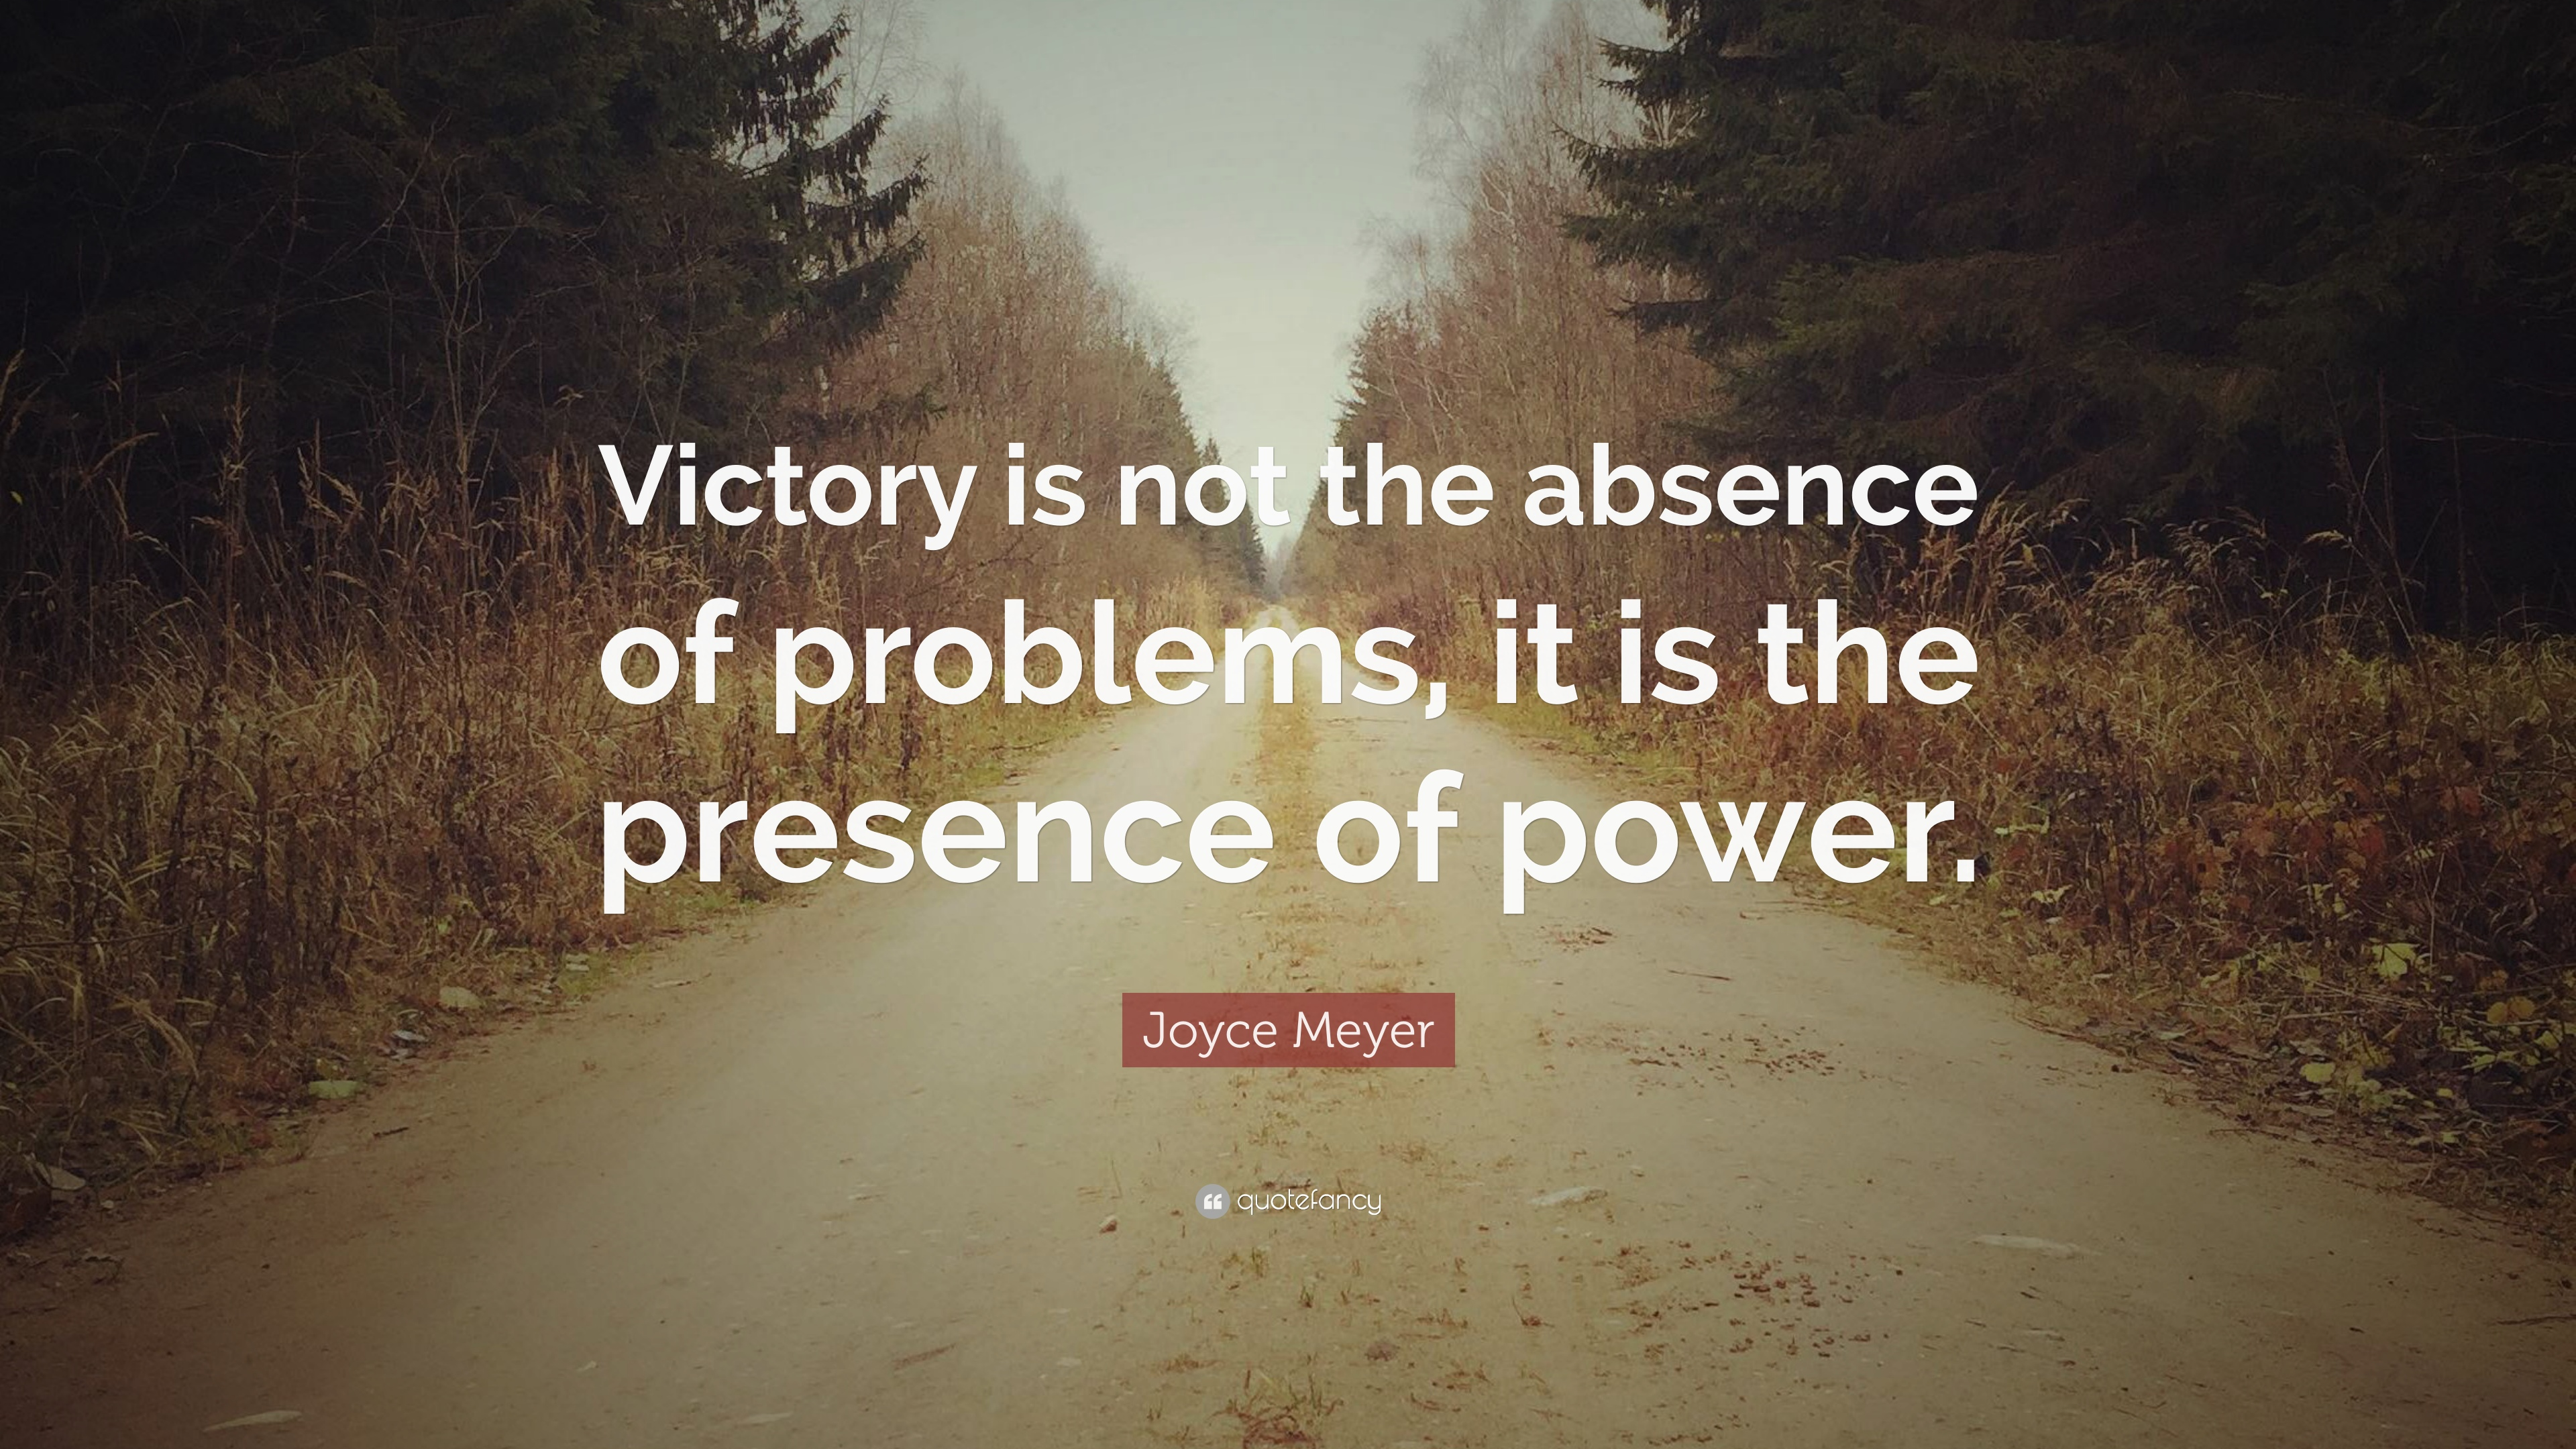 Victory quotes victory is not the absence of problems it is the presence